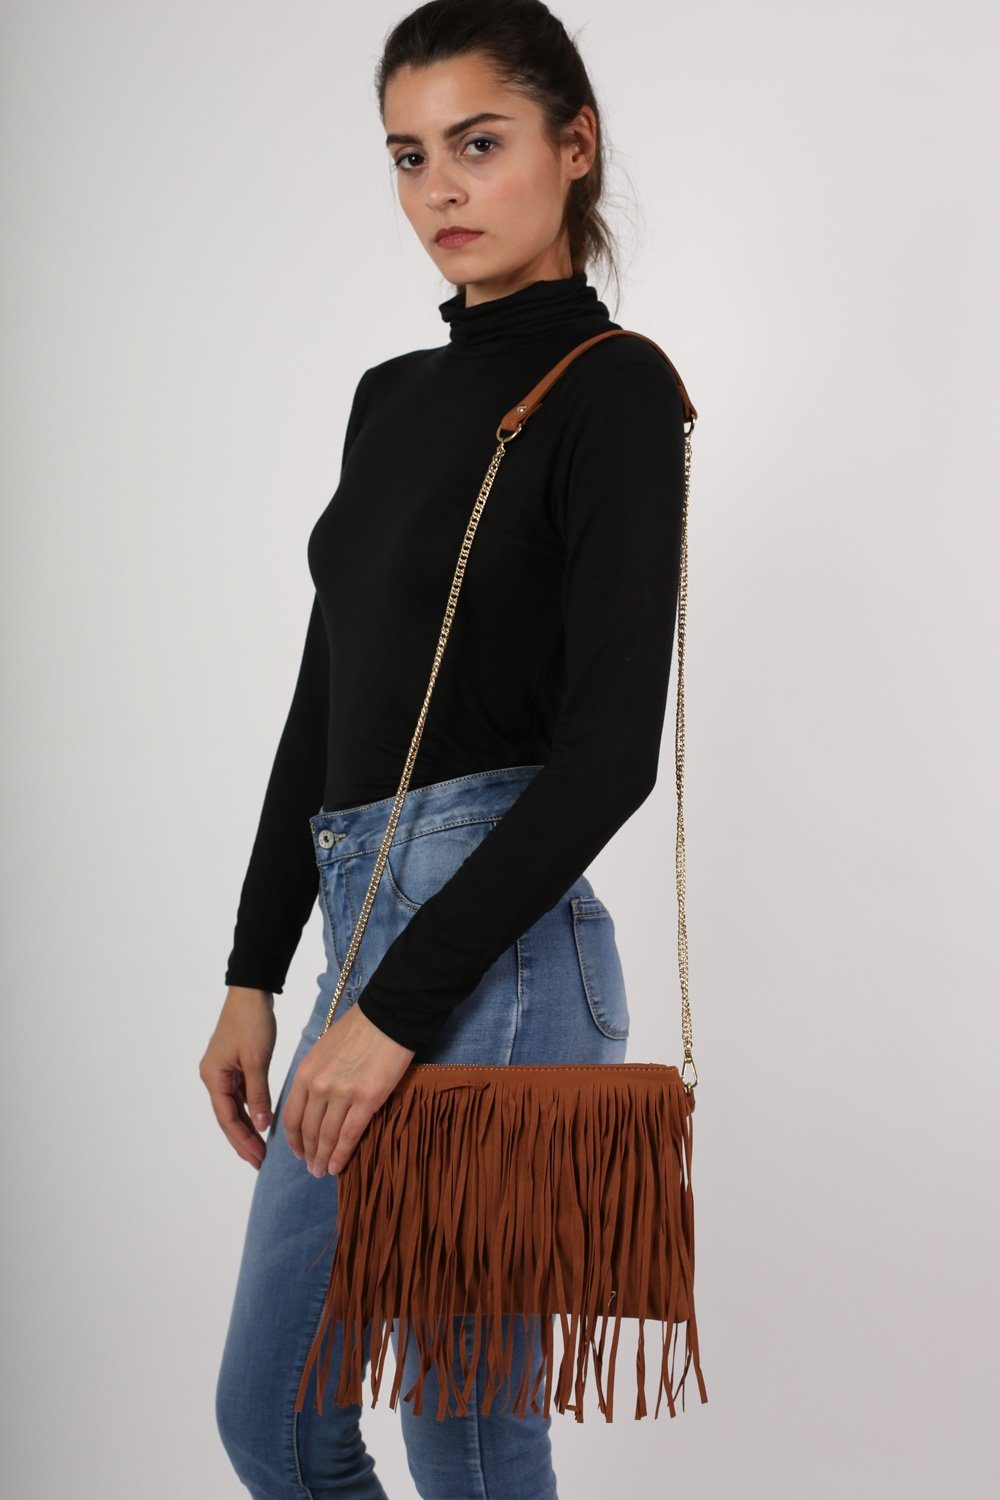 Suedette Tassel Bag in Tan Brown 1